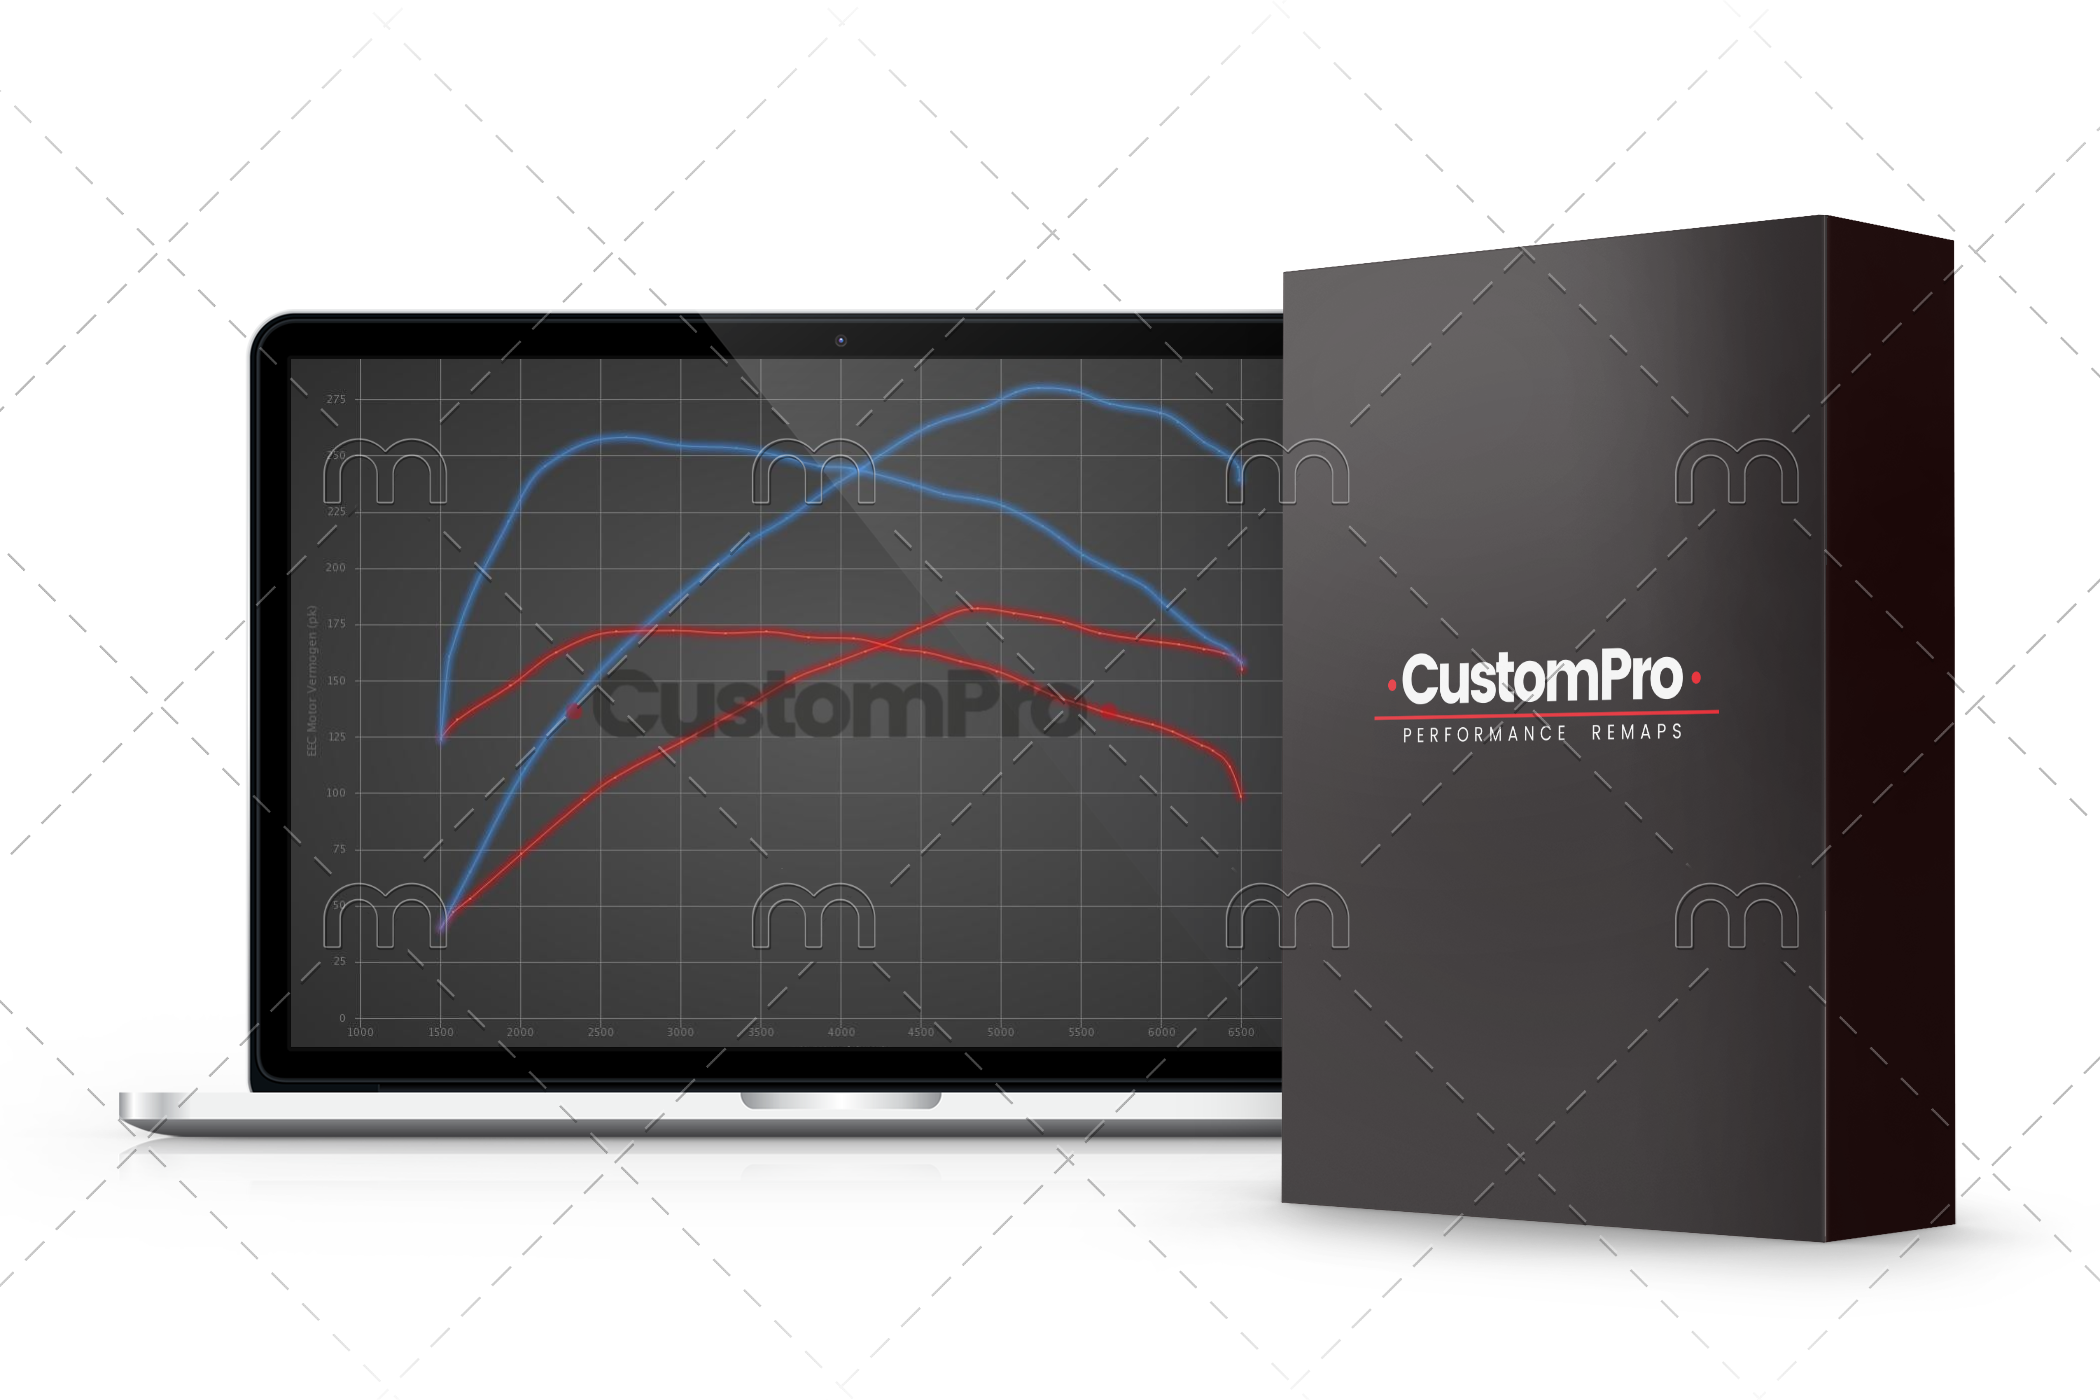 10 x CustomPro tuning credits - Performance Centre